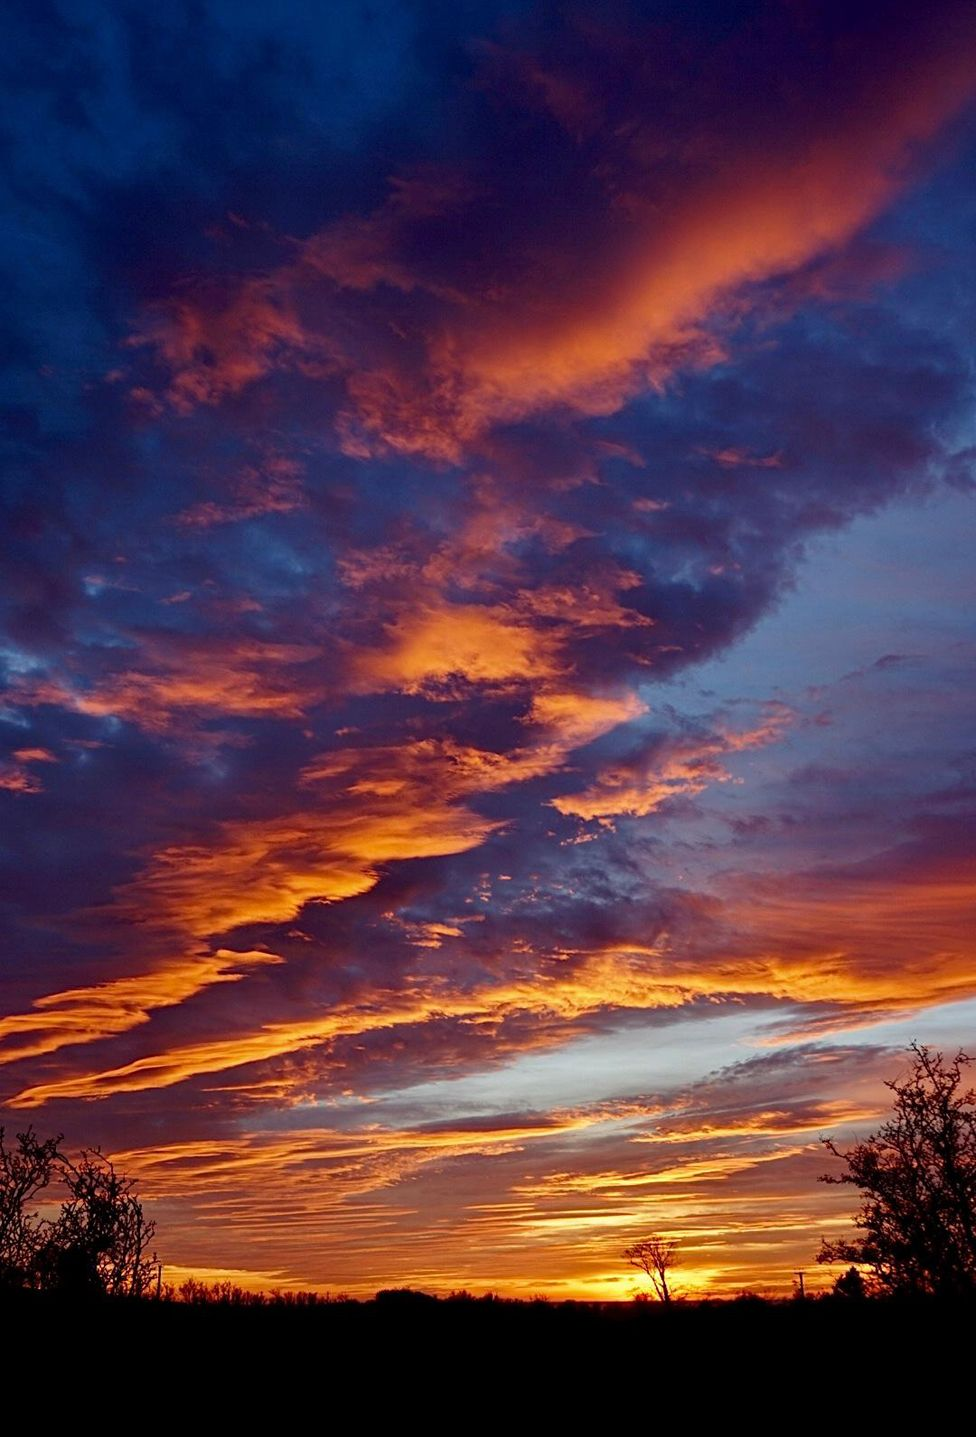 In Pictures Clouds Create Perfect Conditions For Stunning Sunset Beautiful Scenery Pictures Sunset Pictures Clouds